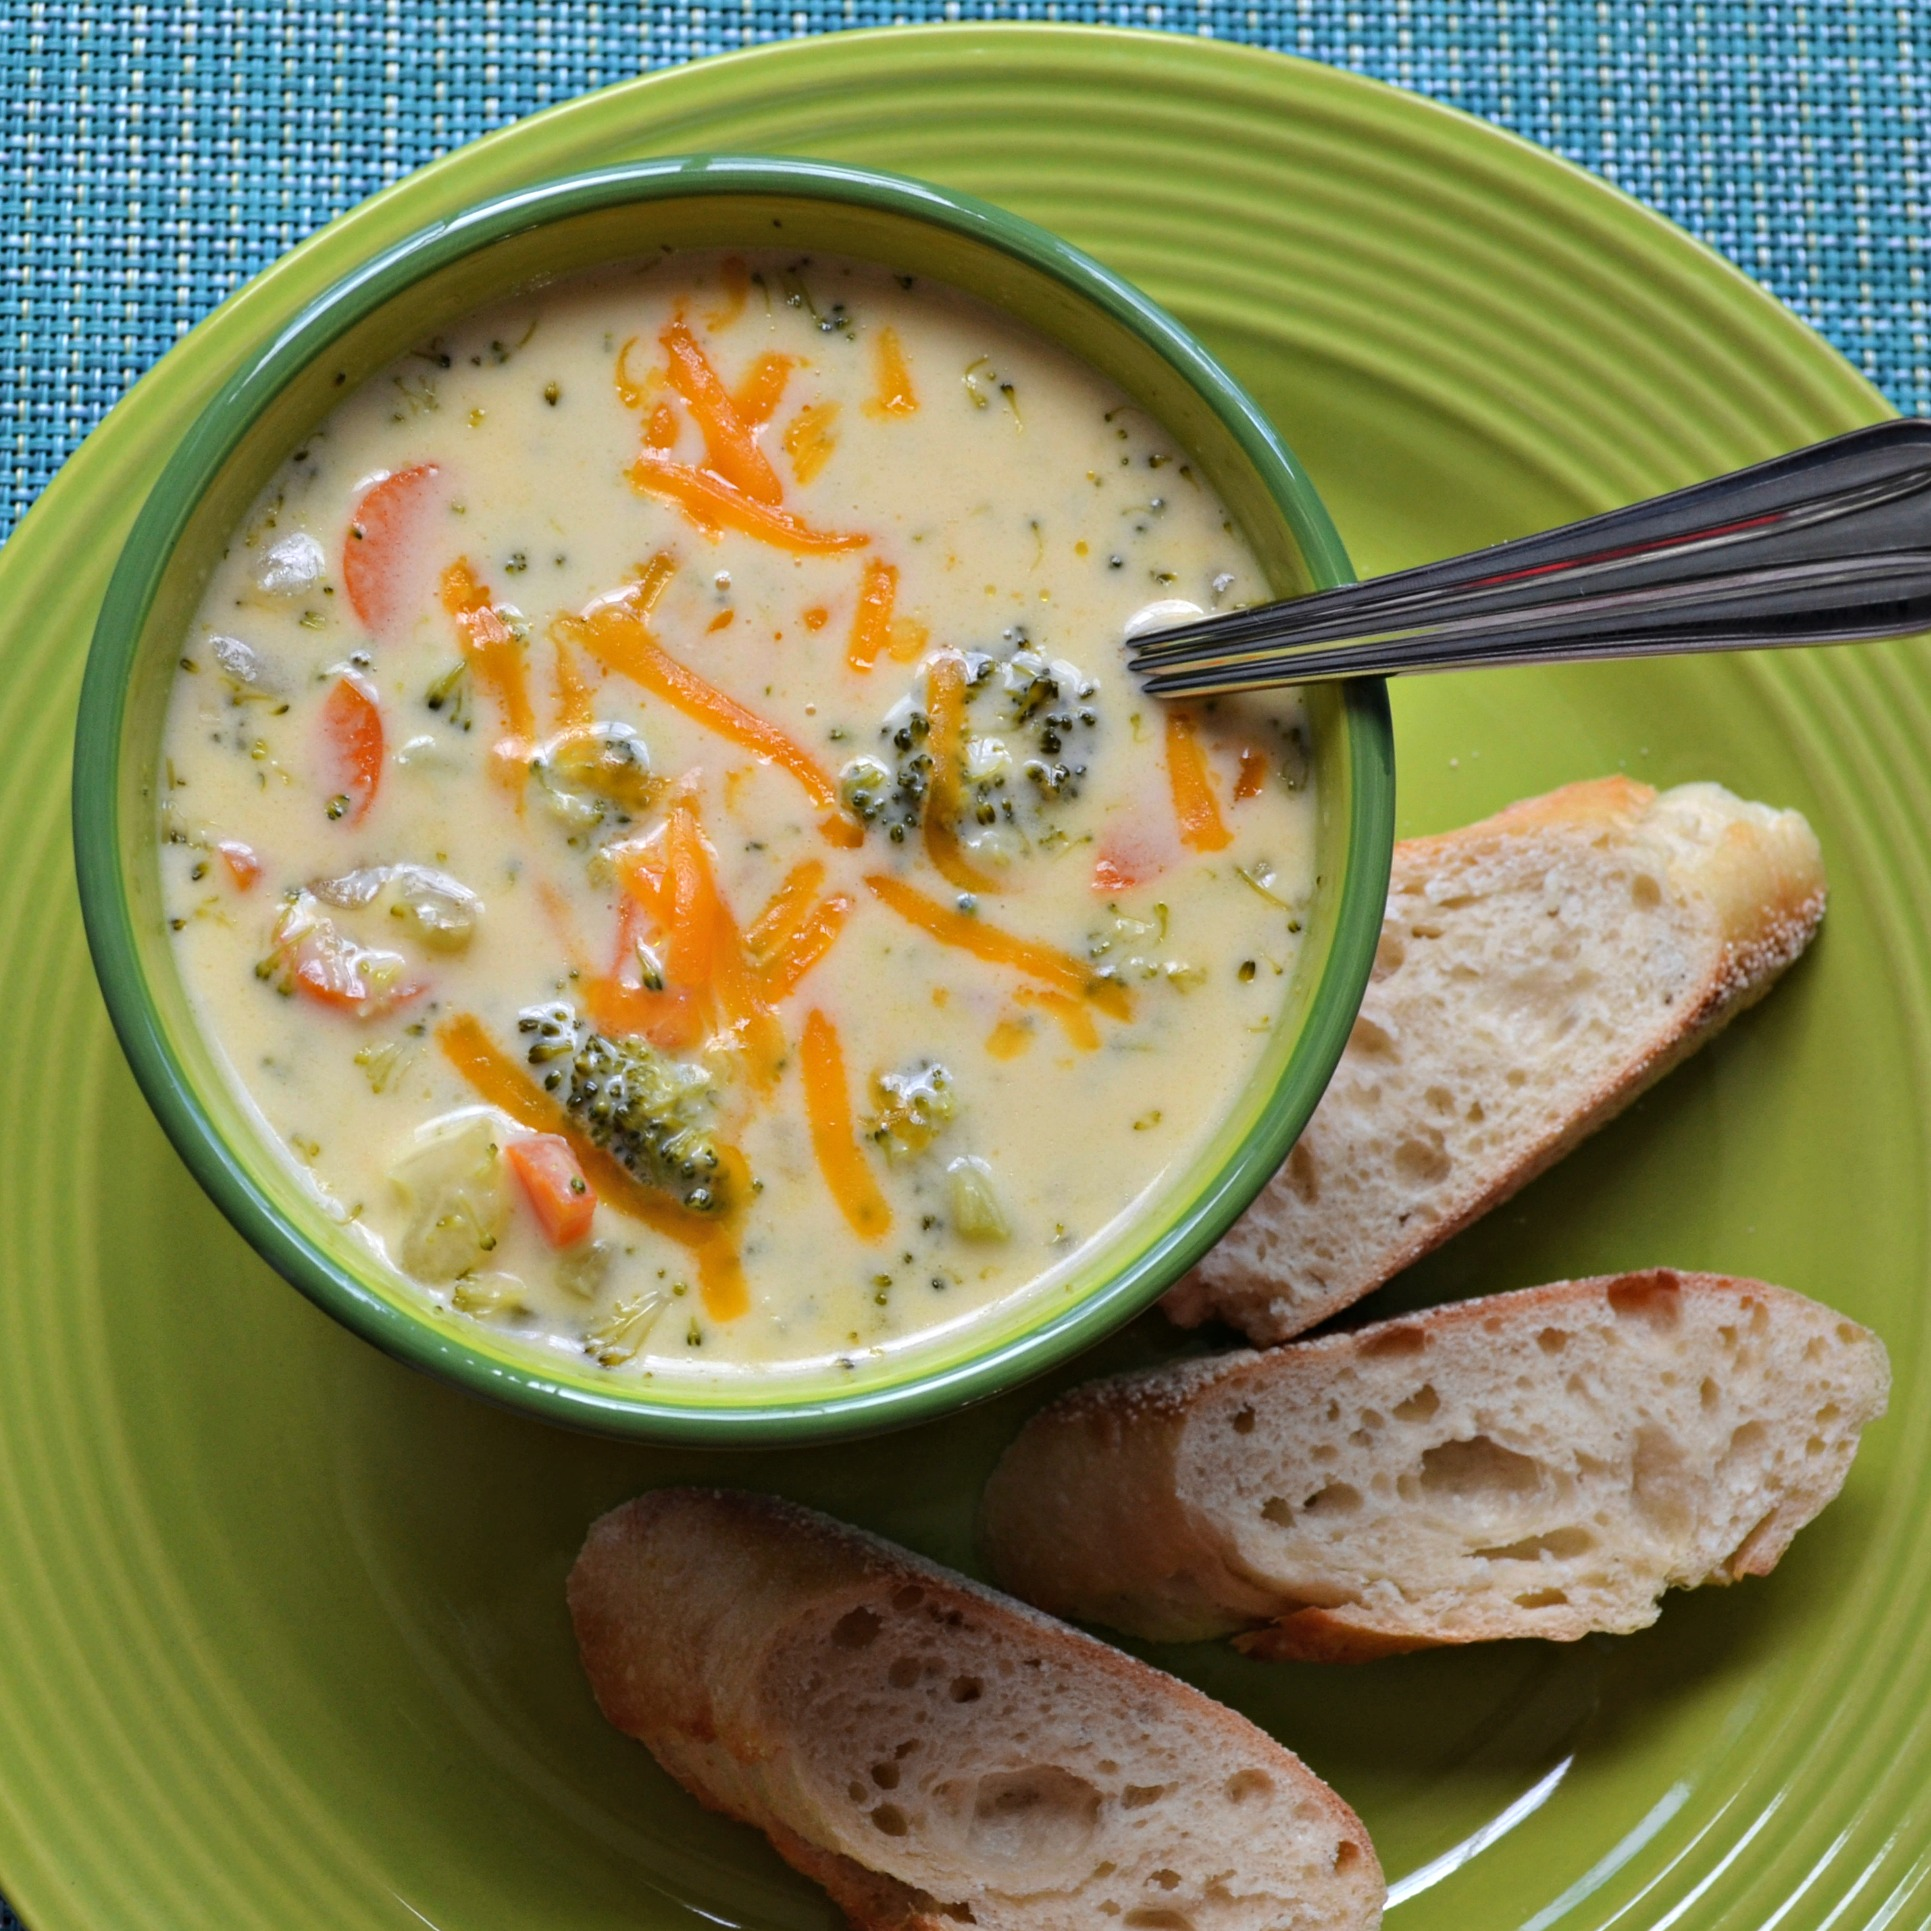 Sandy's Homemade Broccoli and Cheddar Soup Sandy Lafleur